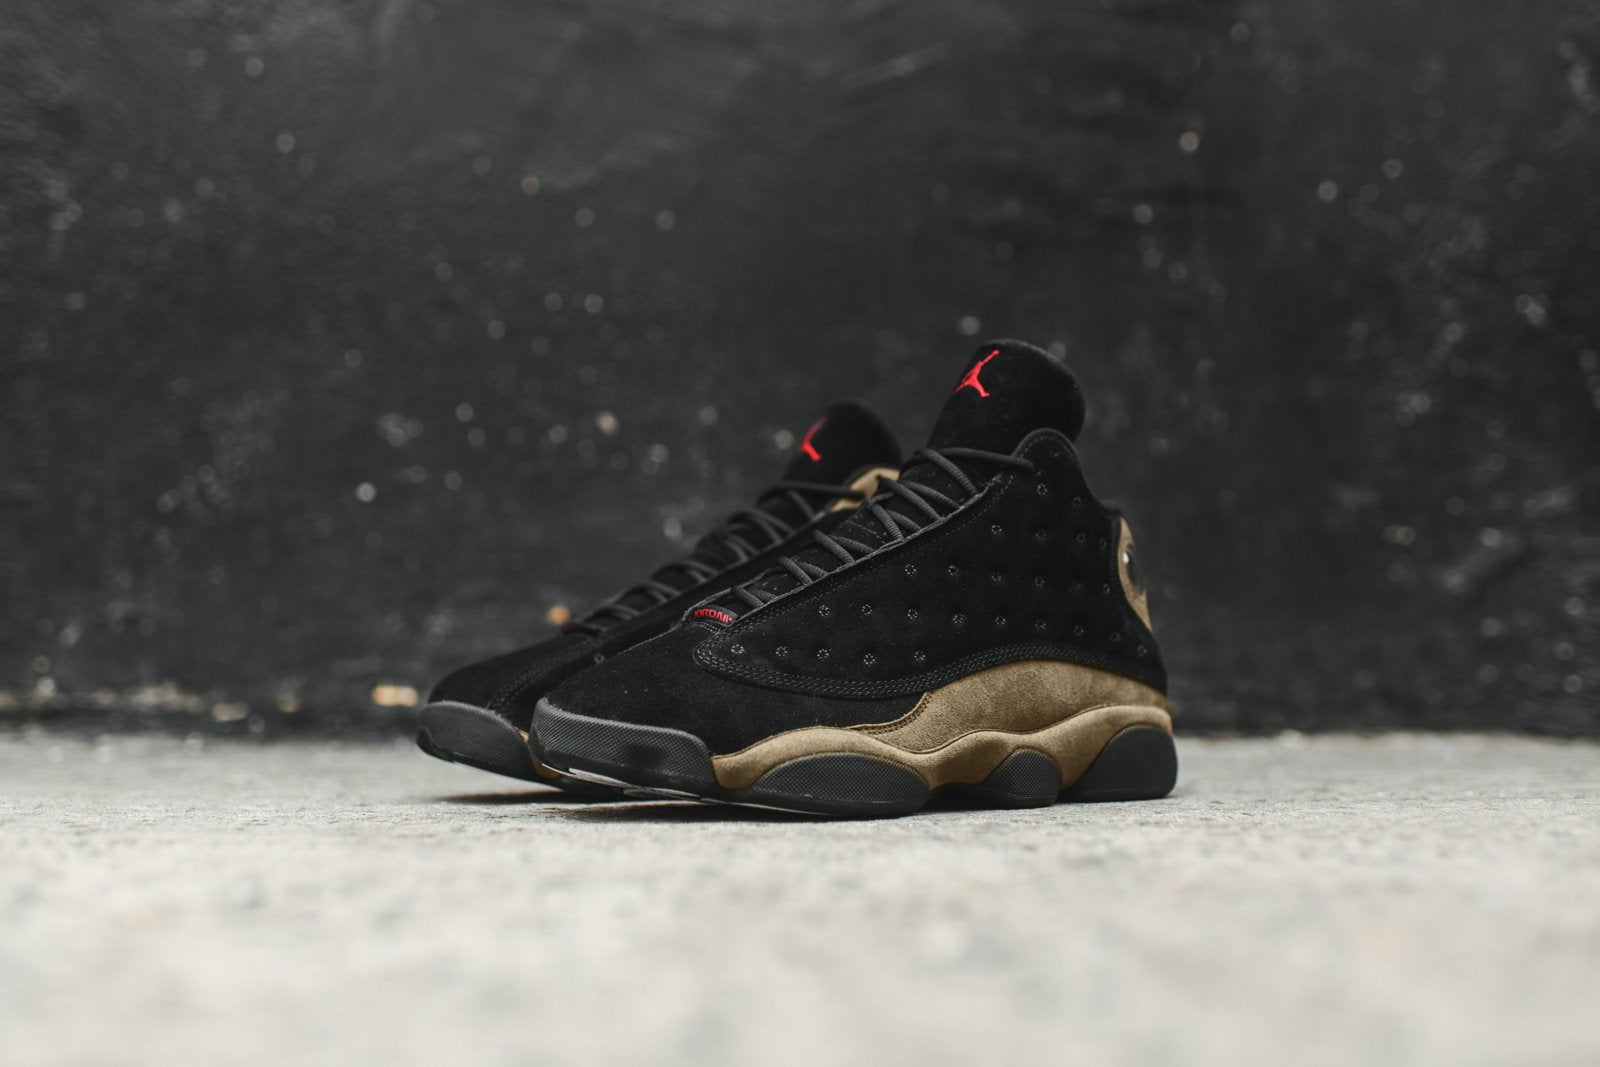 buy online 0215b dcb9a Nike Air Jordan 13 Retro - Black / Olive – Kith